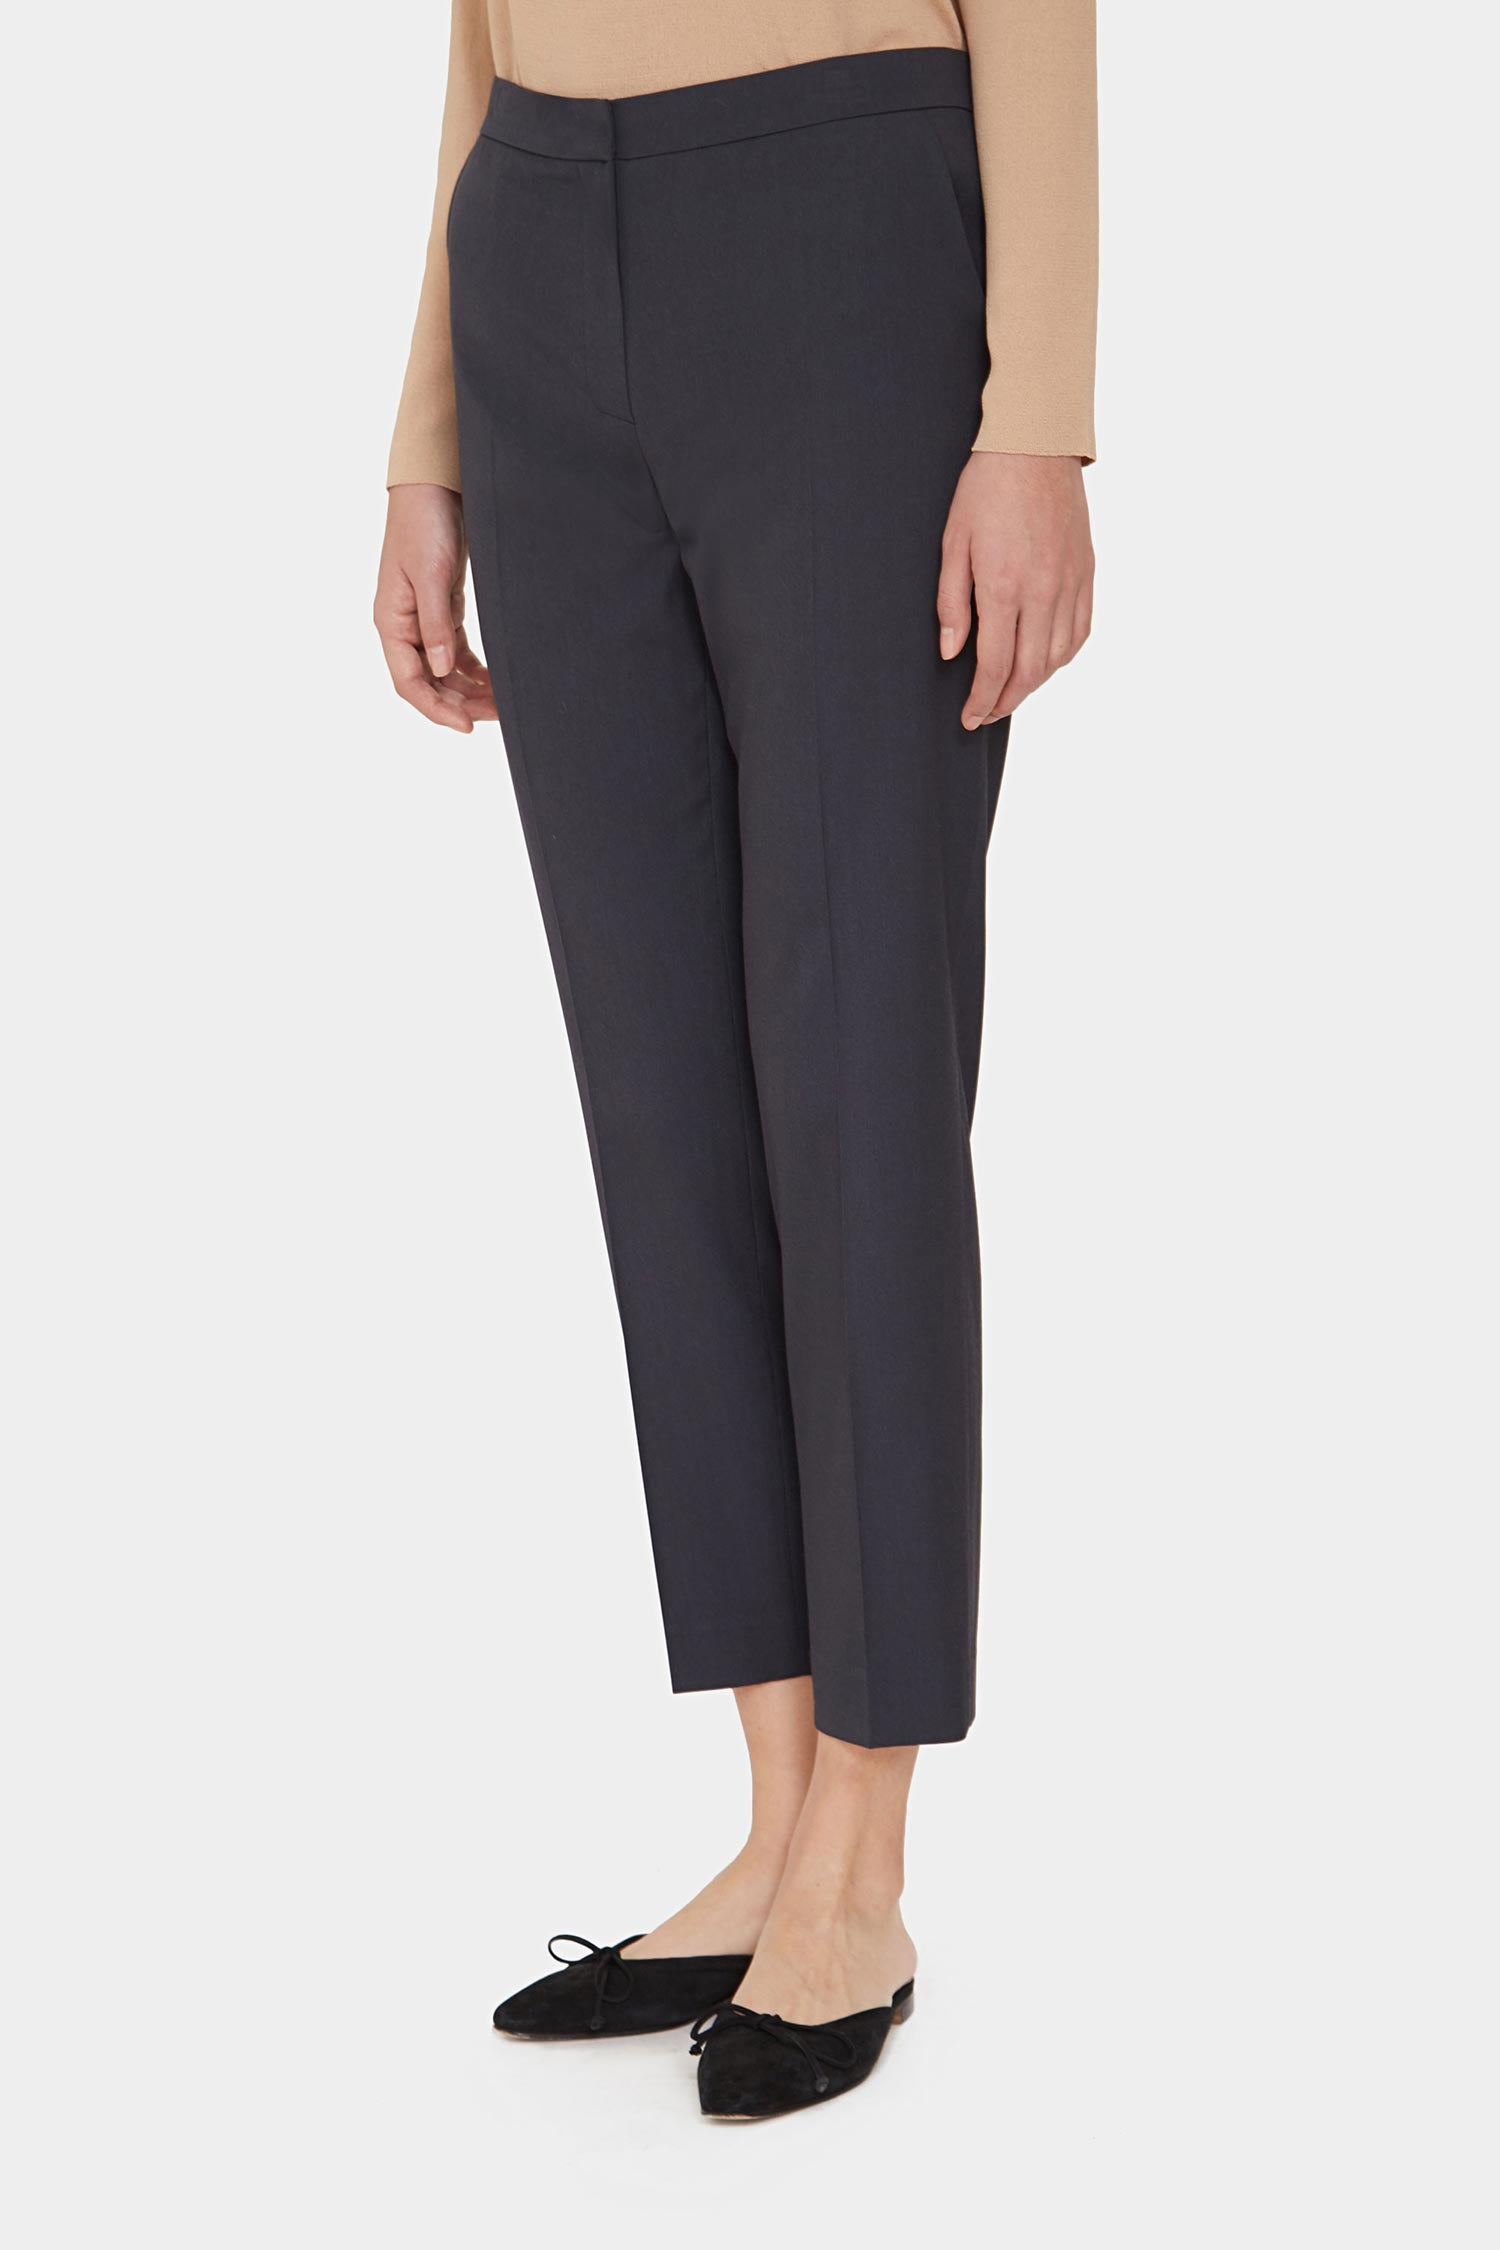 DARK GREY MORGAN RAYON BLEND PANTS